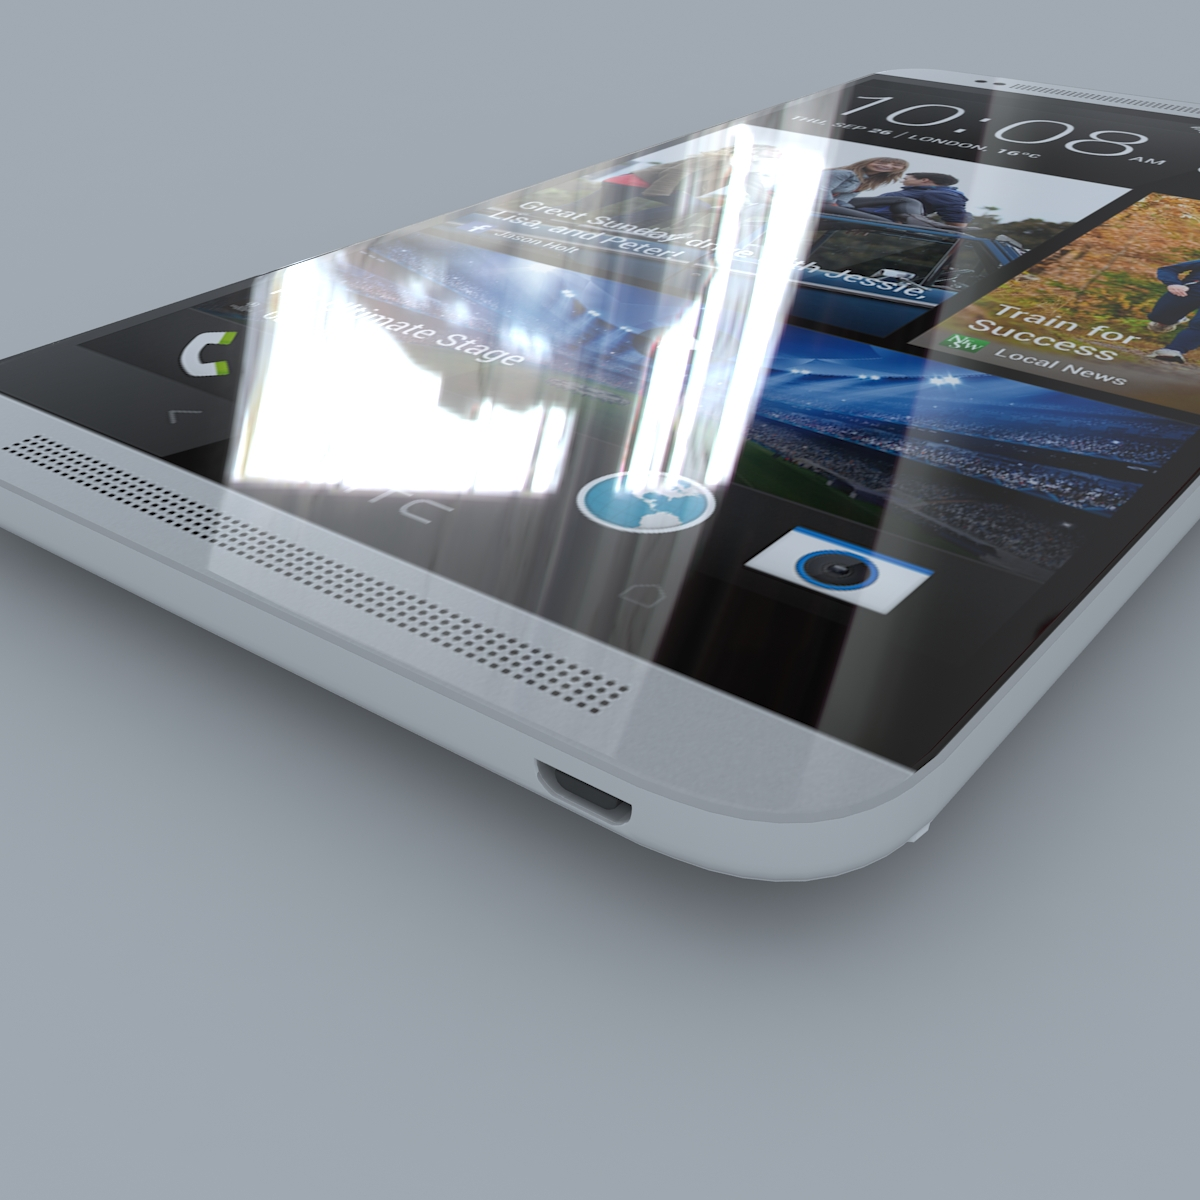 htc one max 3d model max c4d ma mb obj 158167